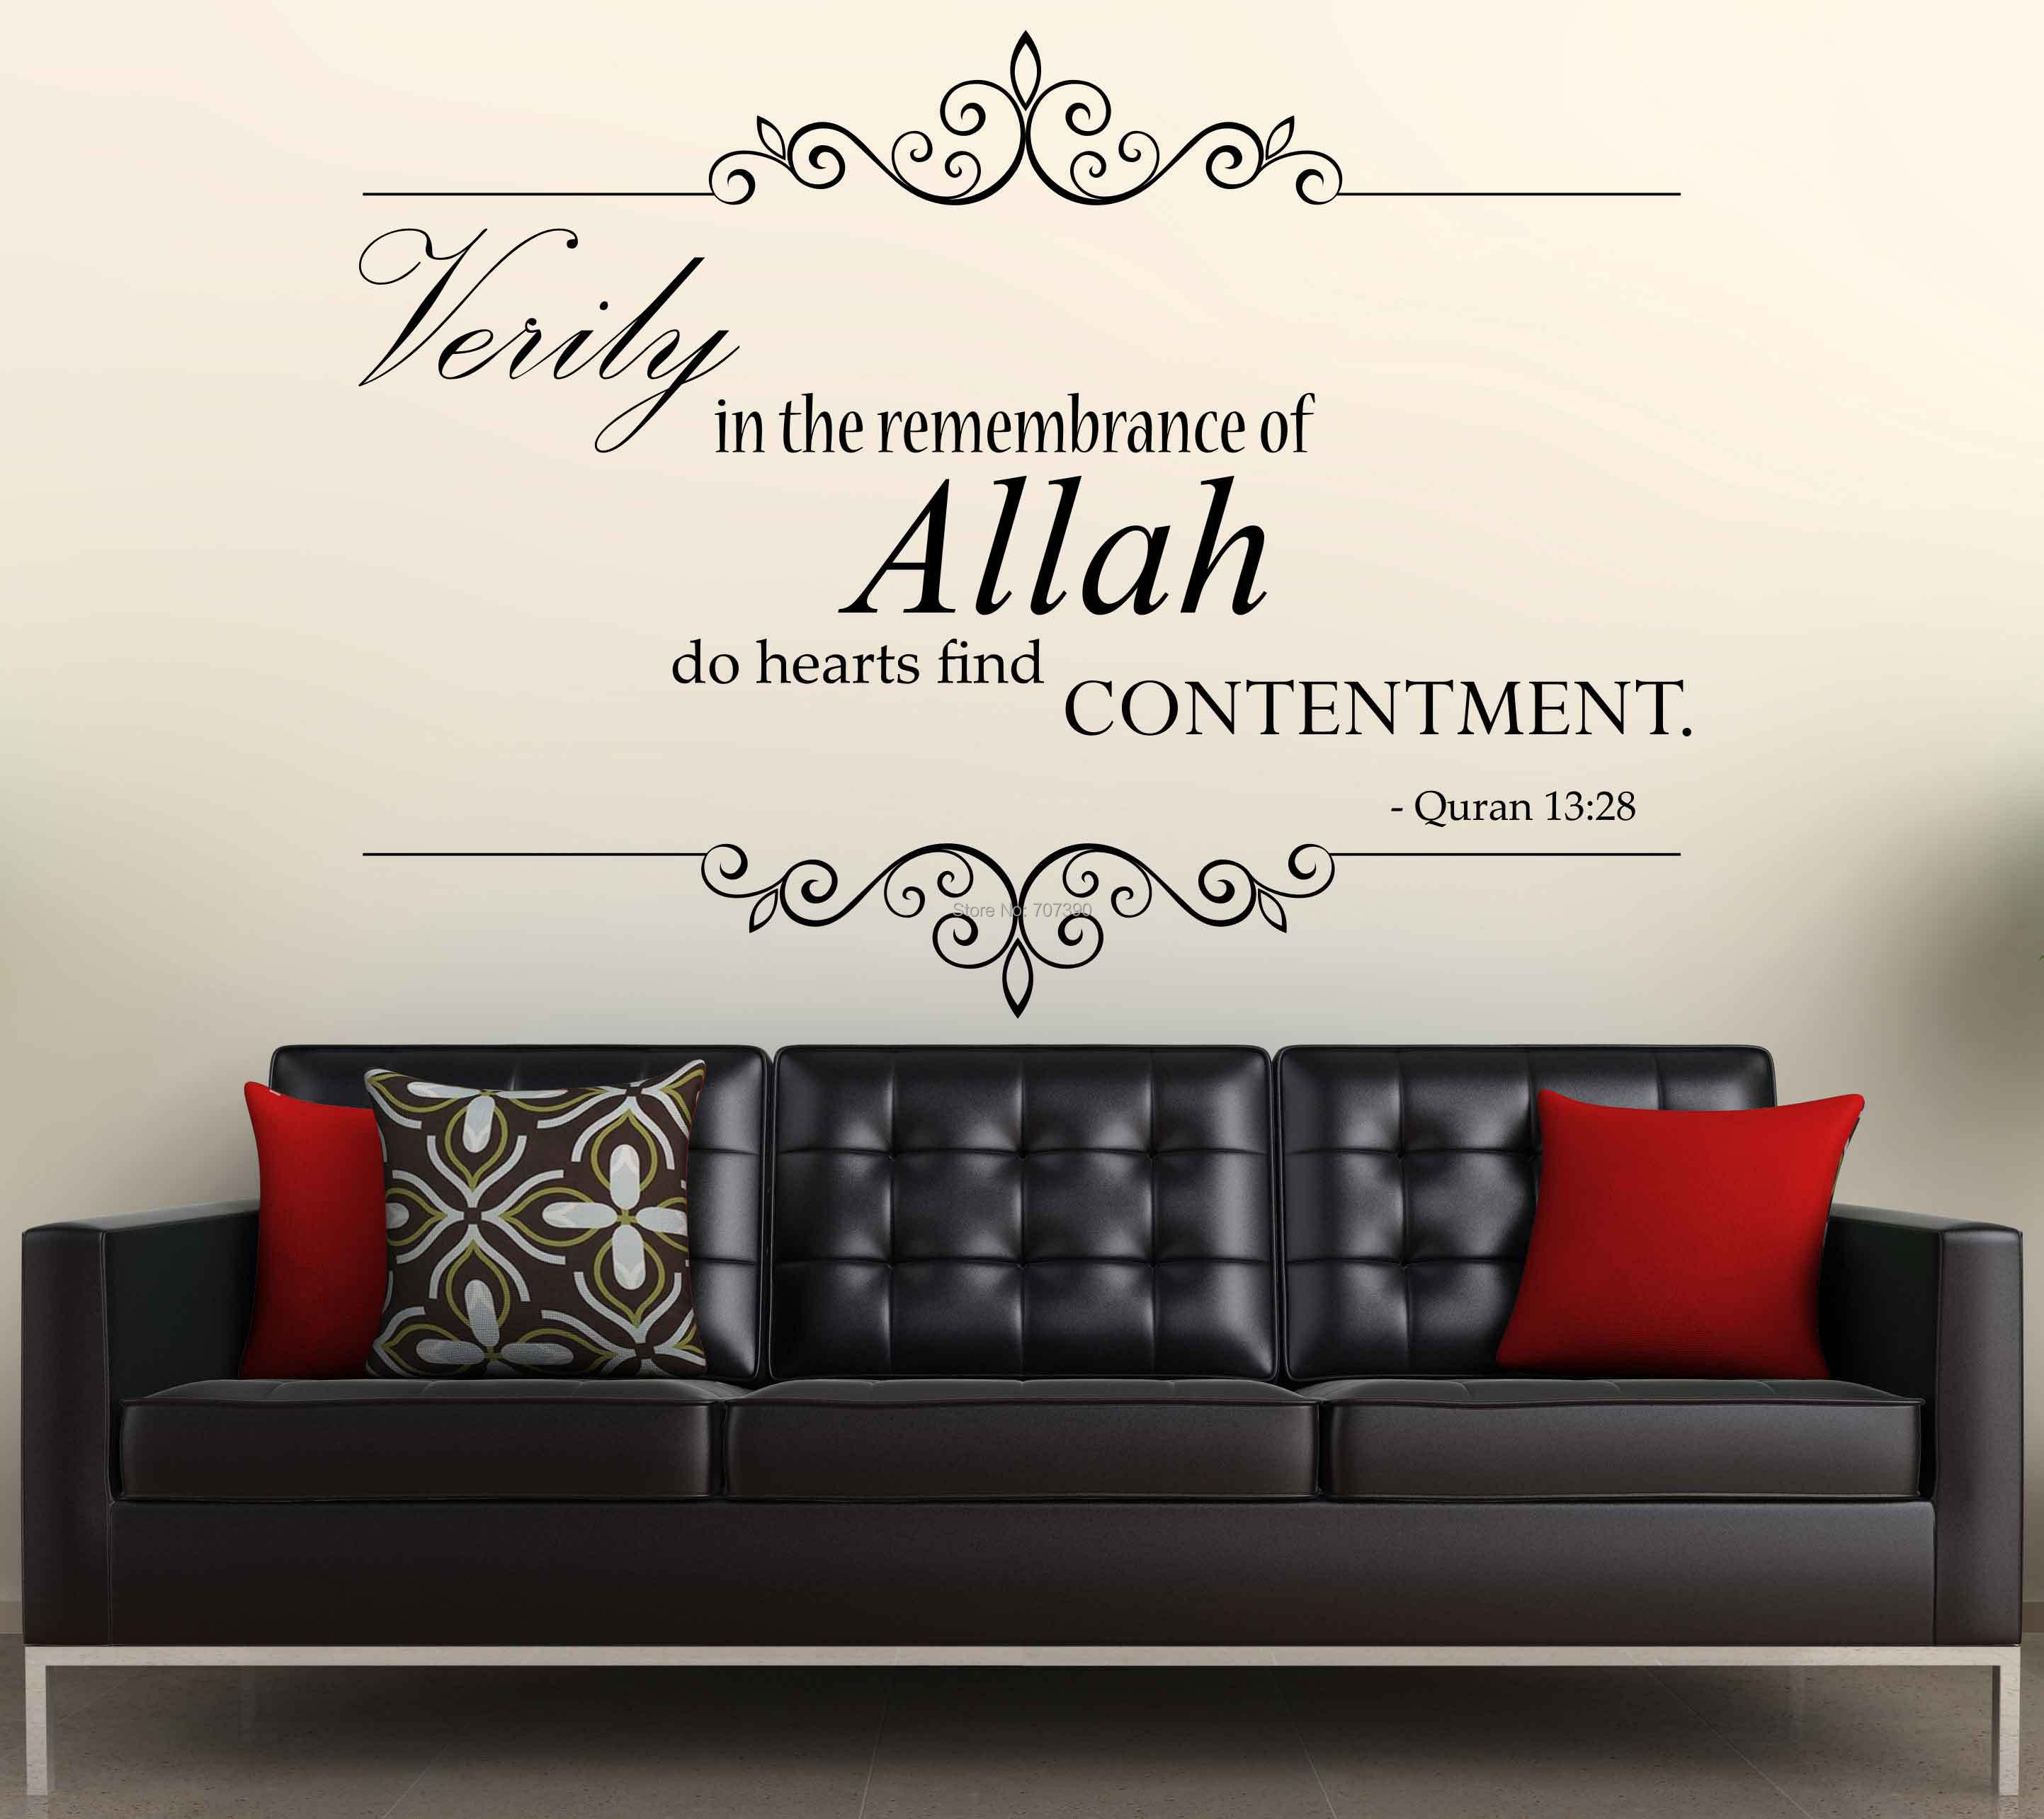 customized allah wall sticker home decor art vinyl muslim decal custom wall stickers wall art quotes designs gemma duffy